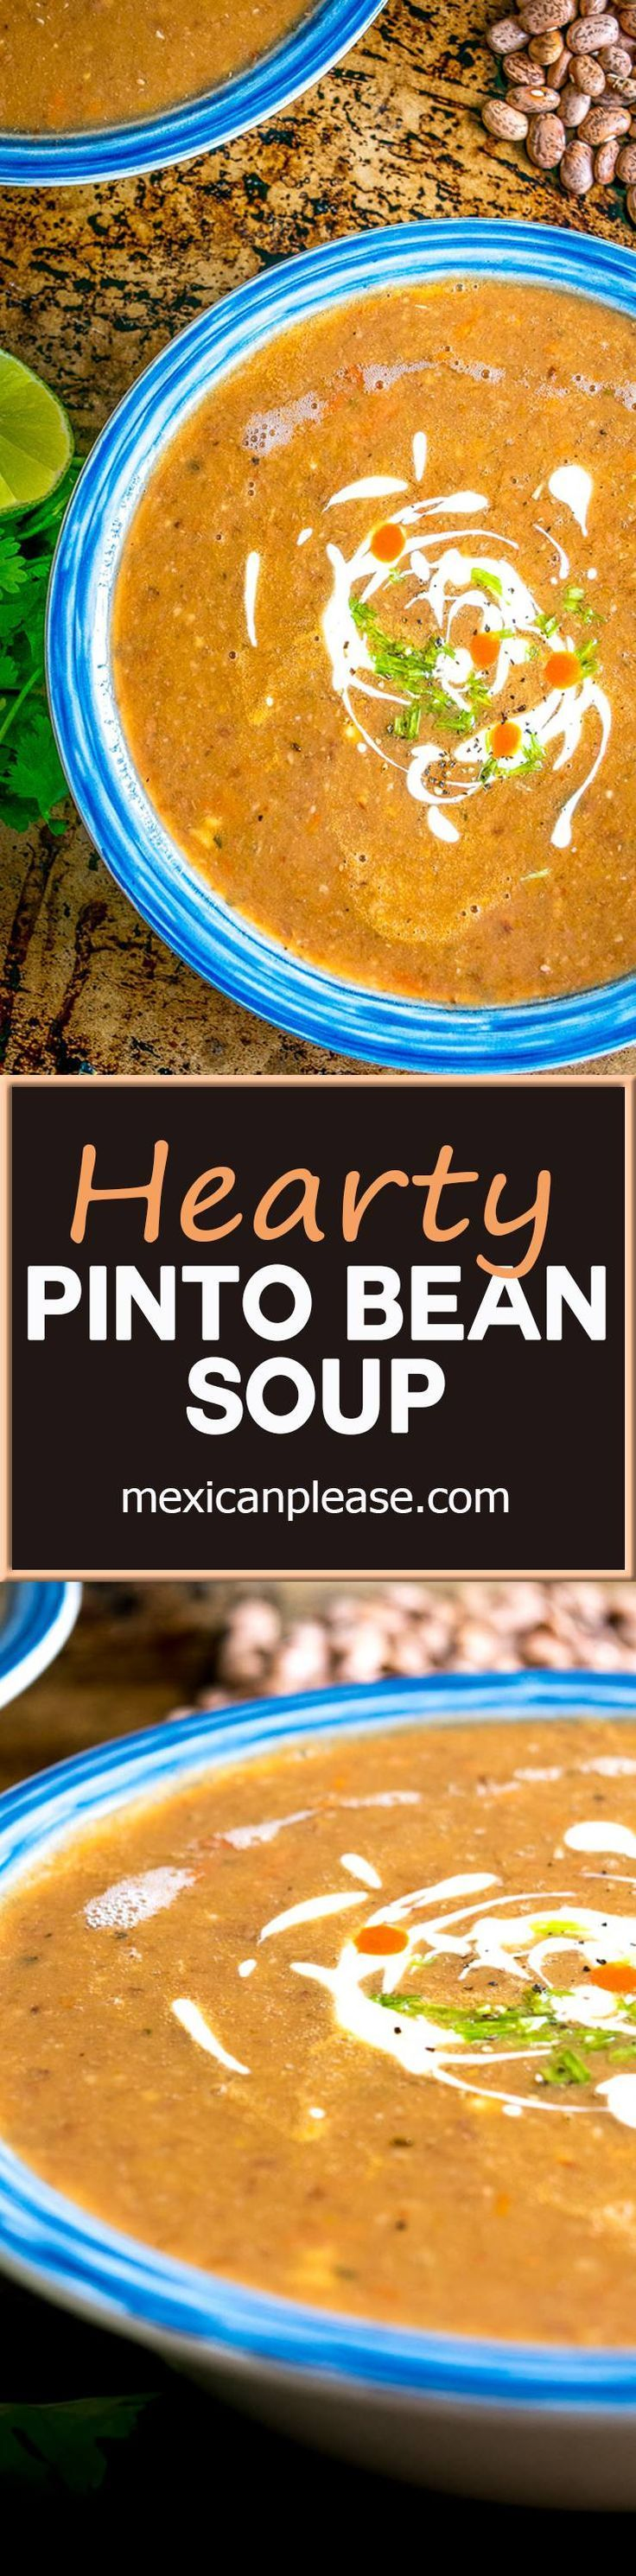 Sopa Tarasca is one of Mexican cuisine's most popular soups -- a hearty pinto bean soup that will keep you coming back for more.  Great flavor with just a hint of spice from a chipotle in adobo.  So g